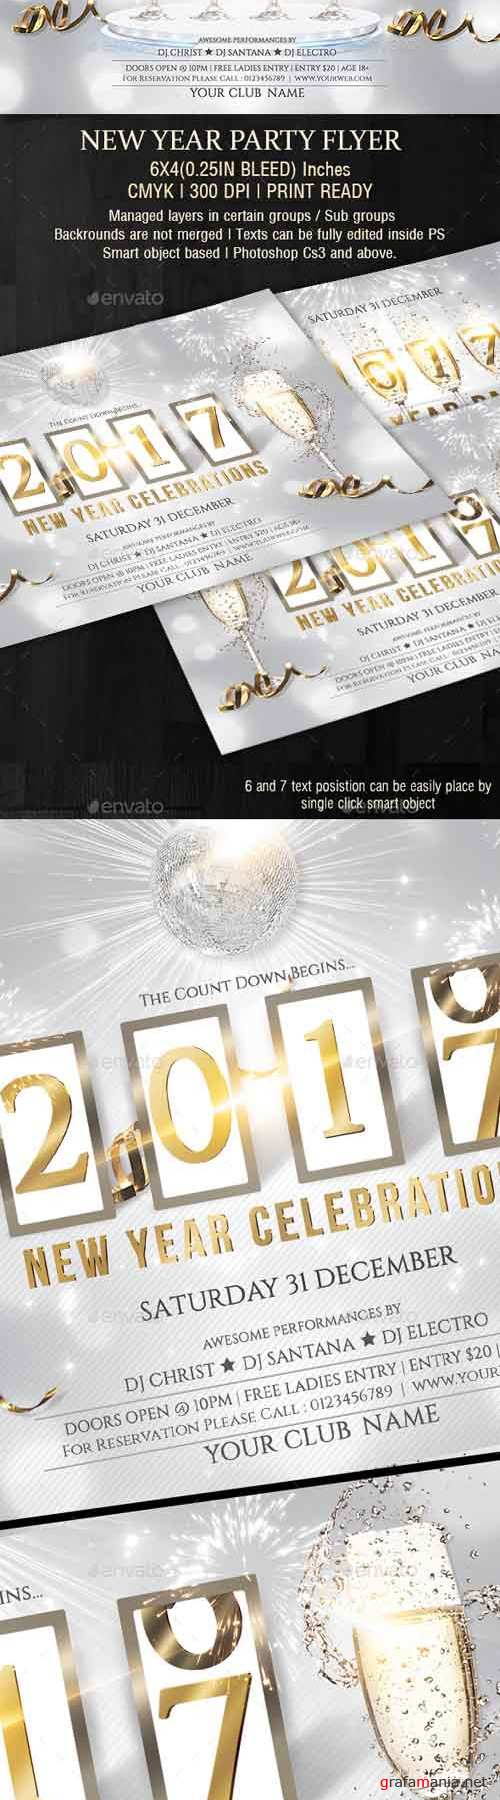 GR - New Year Party Flyer - 19047483